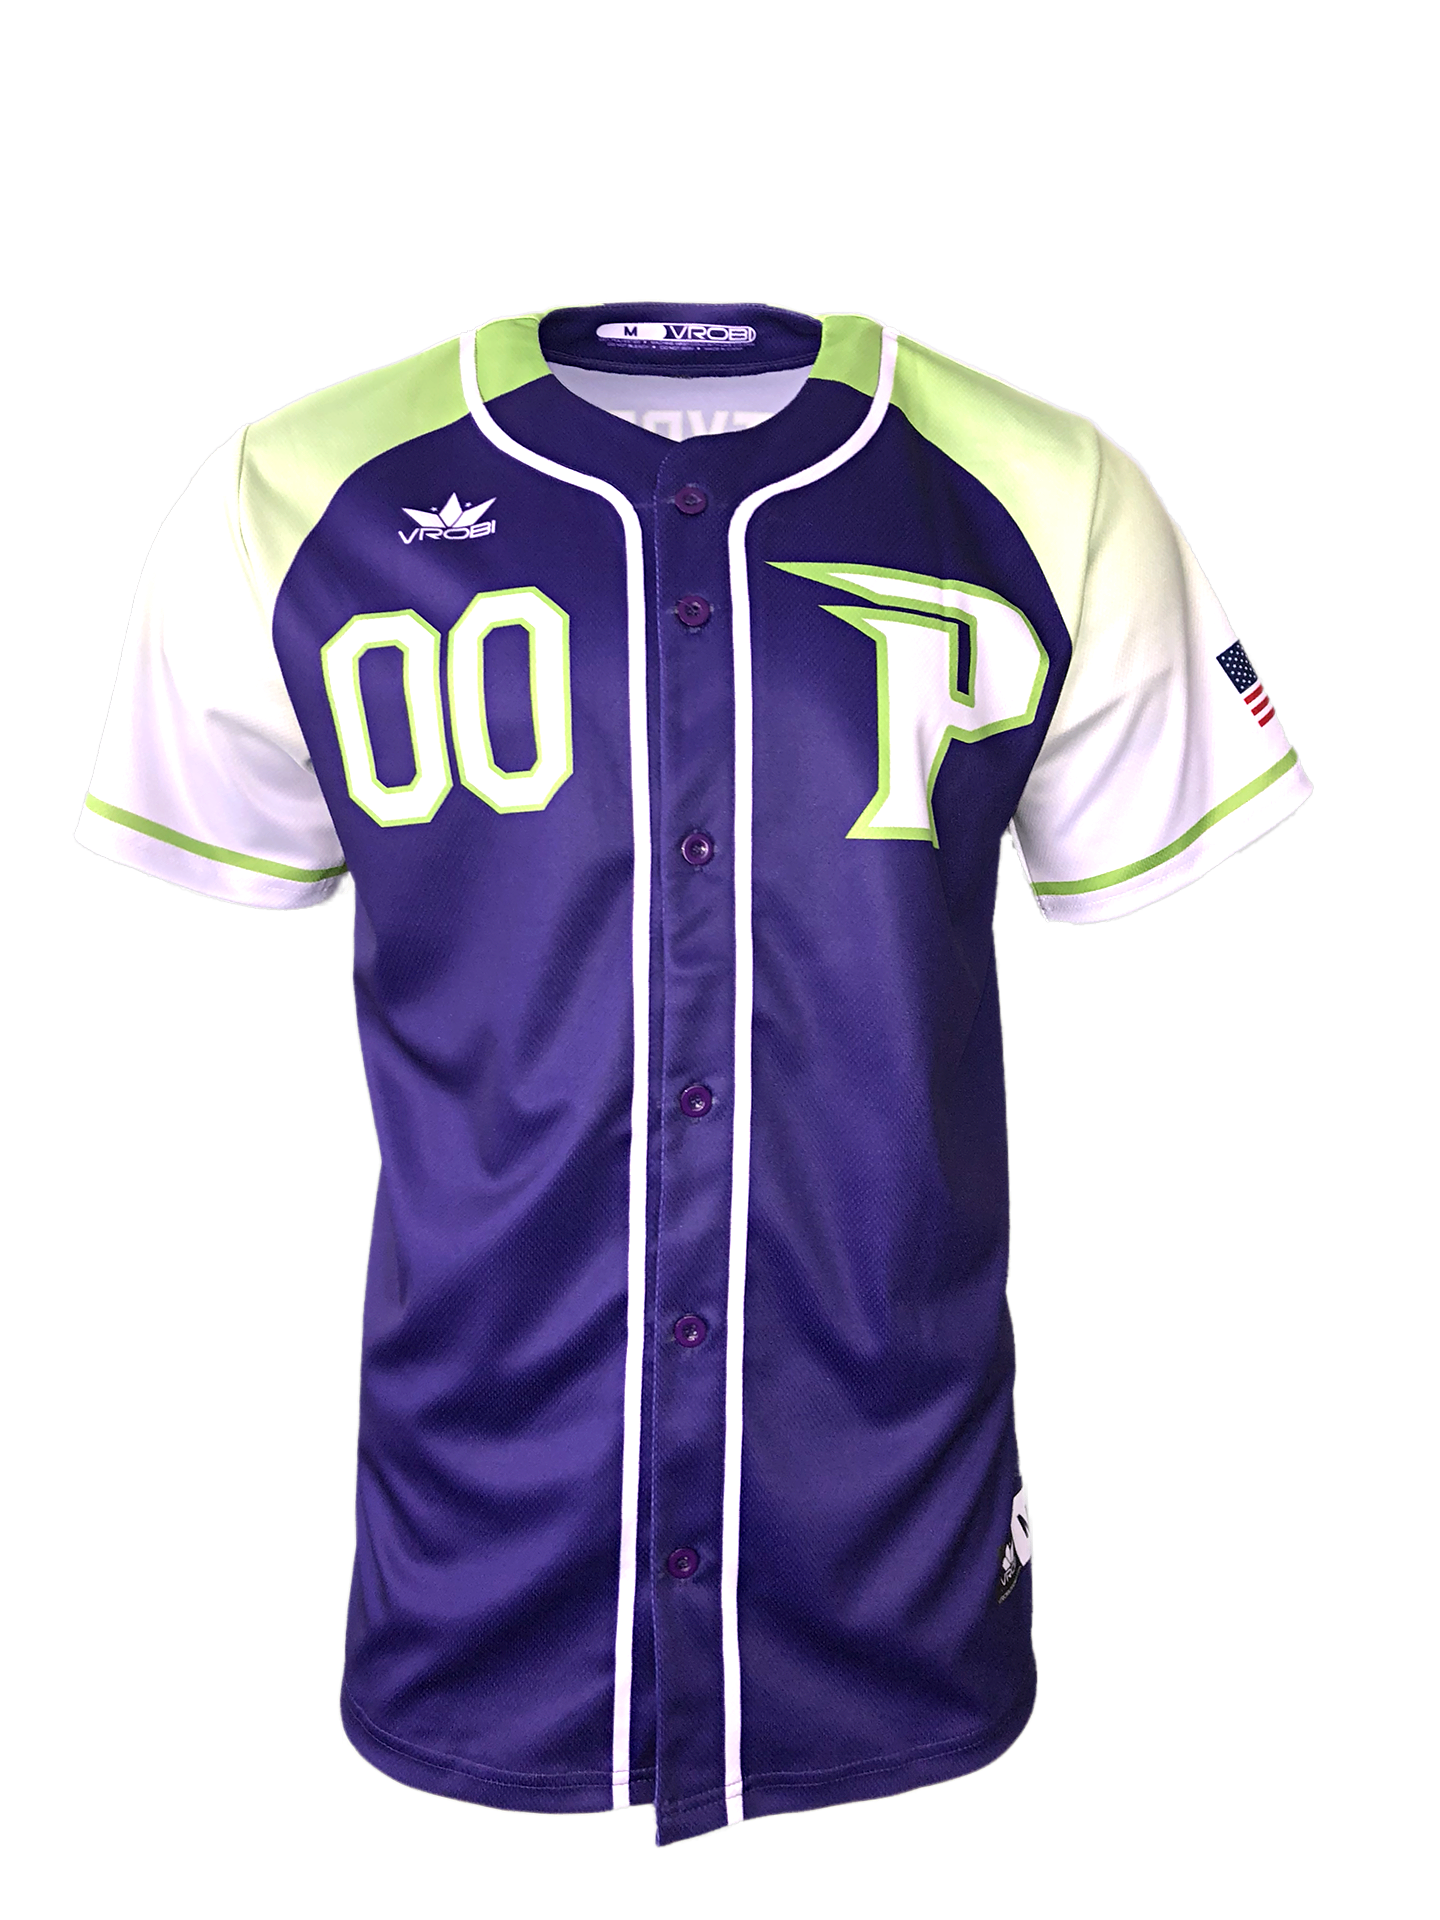 Custom Softball Jersey with Ombre fade